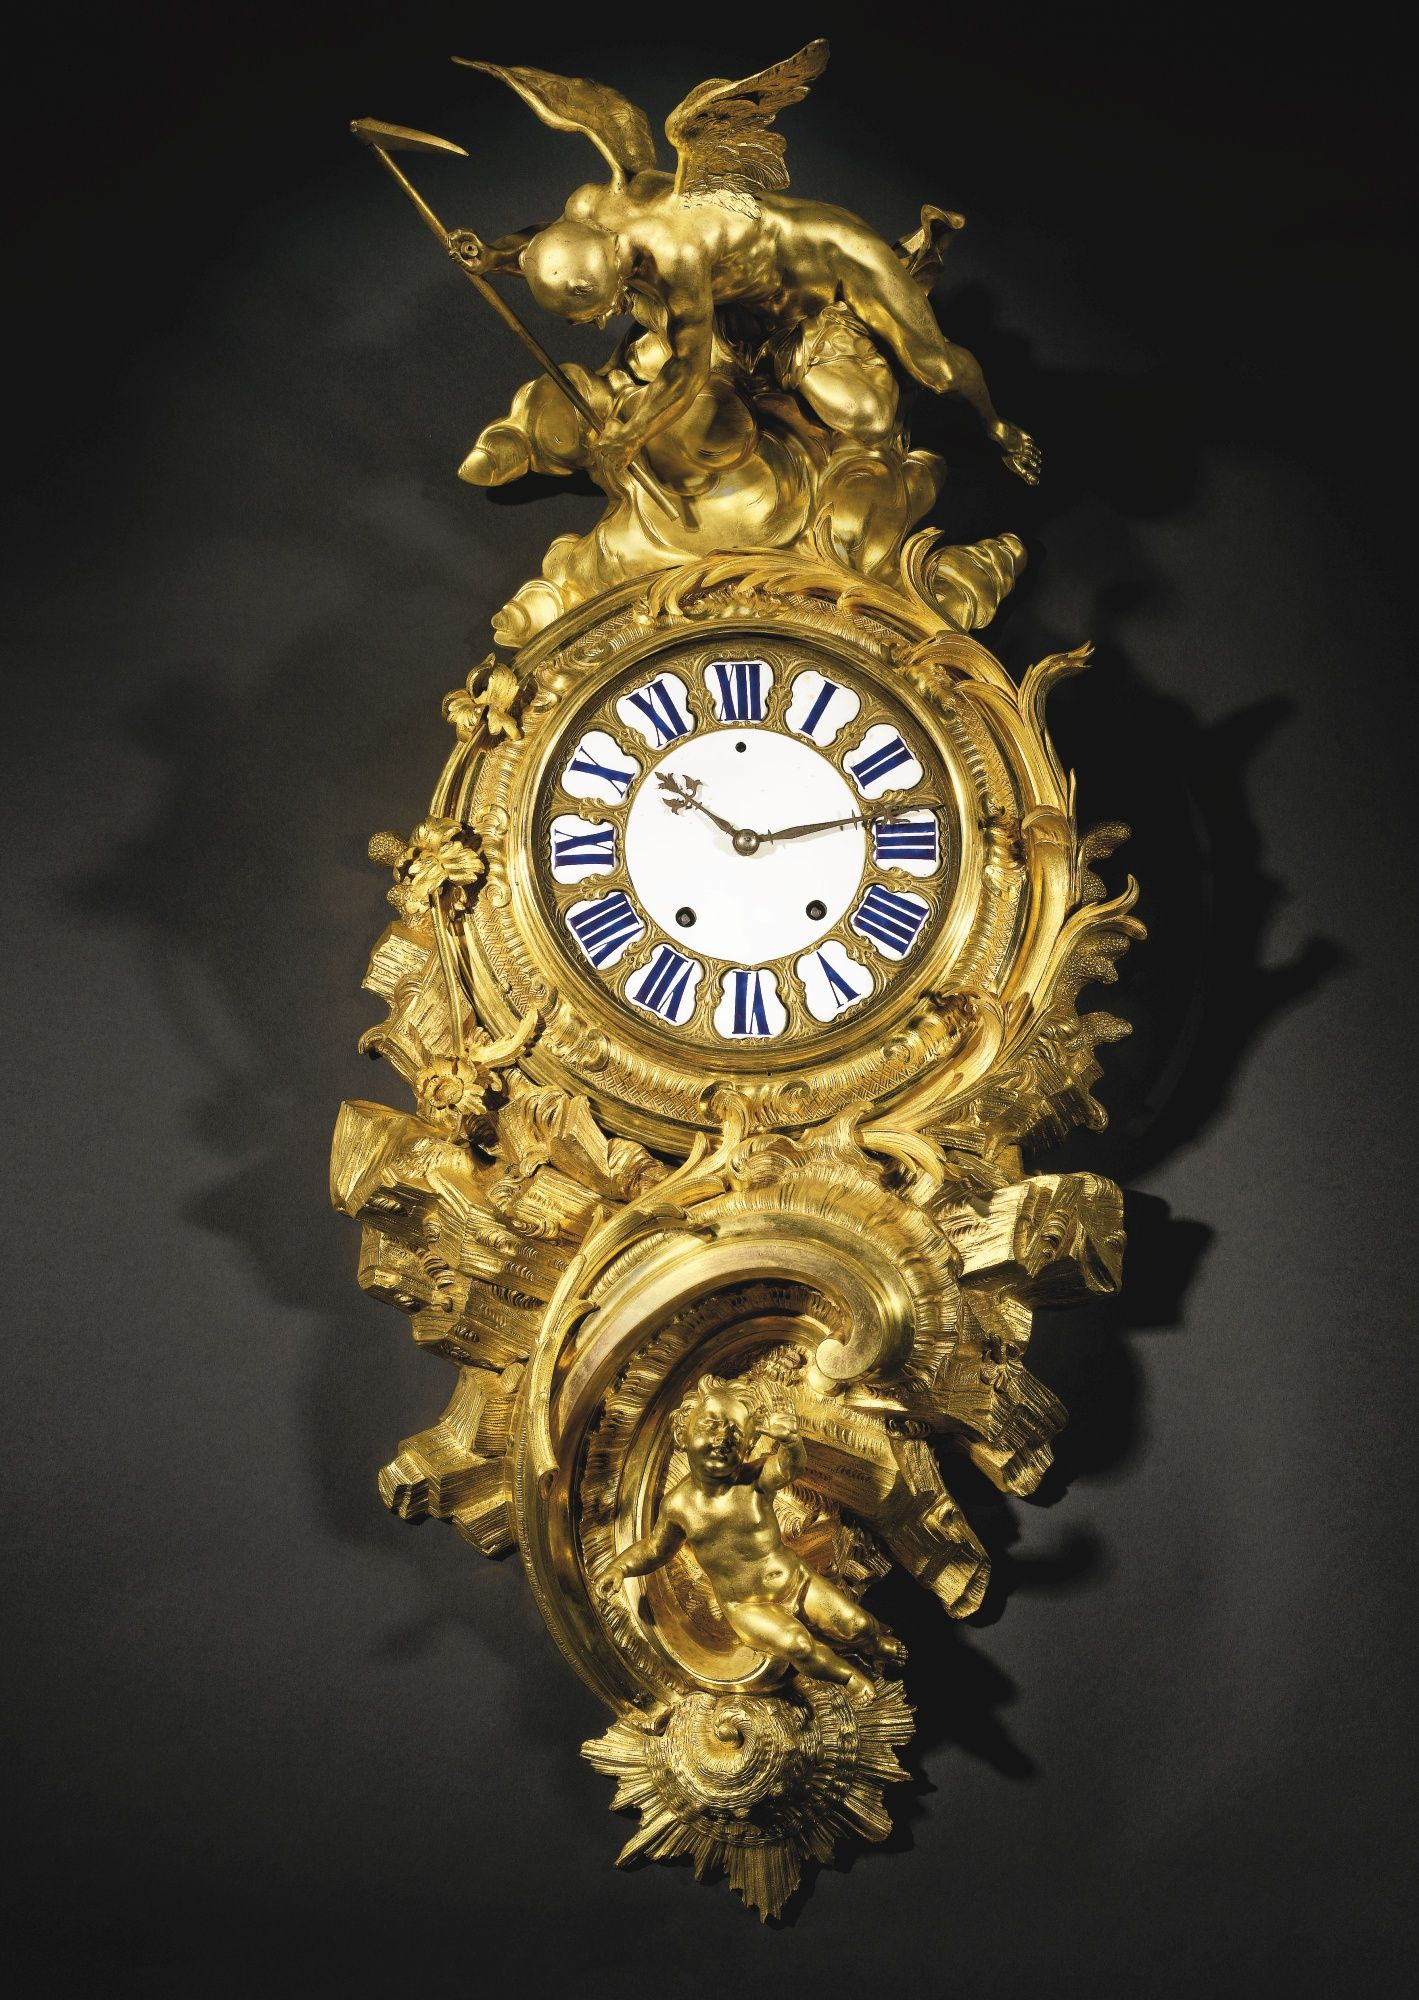 A LARGE AND RARE LOUIS XV ORMOLU CARTEL CLOCK ATTRIBUTED TO CHARLES ...